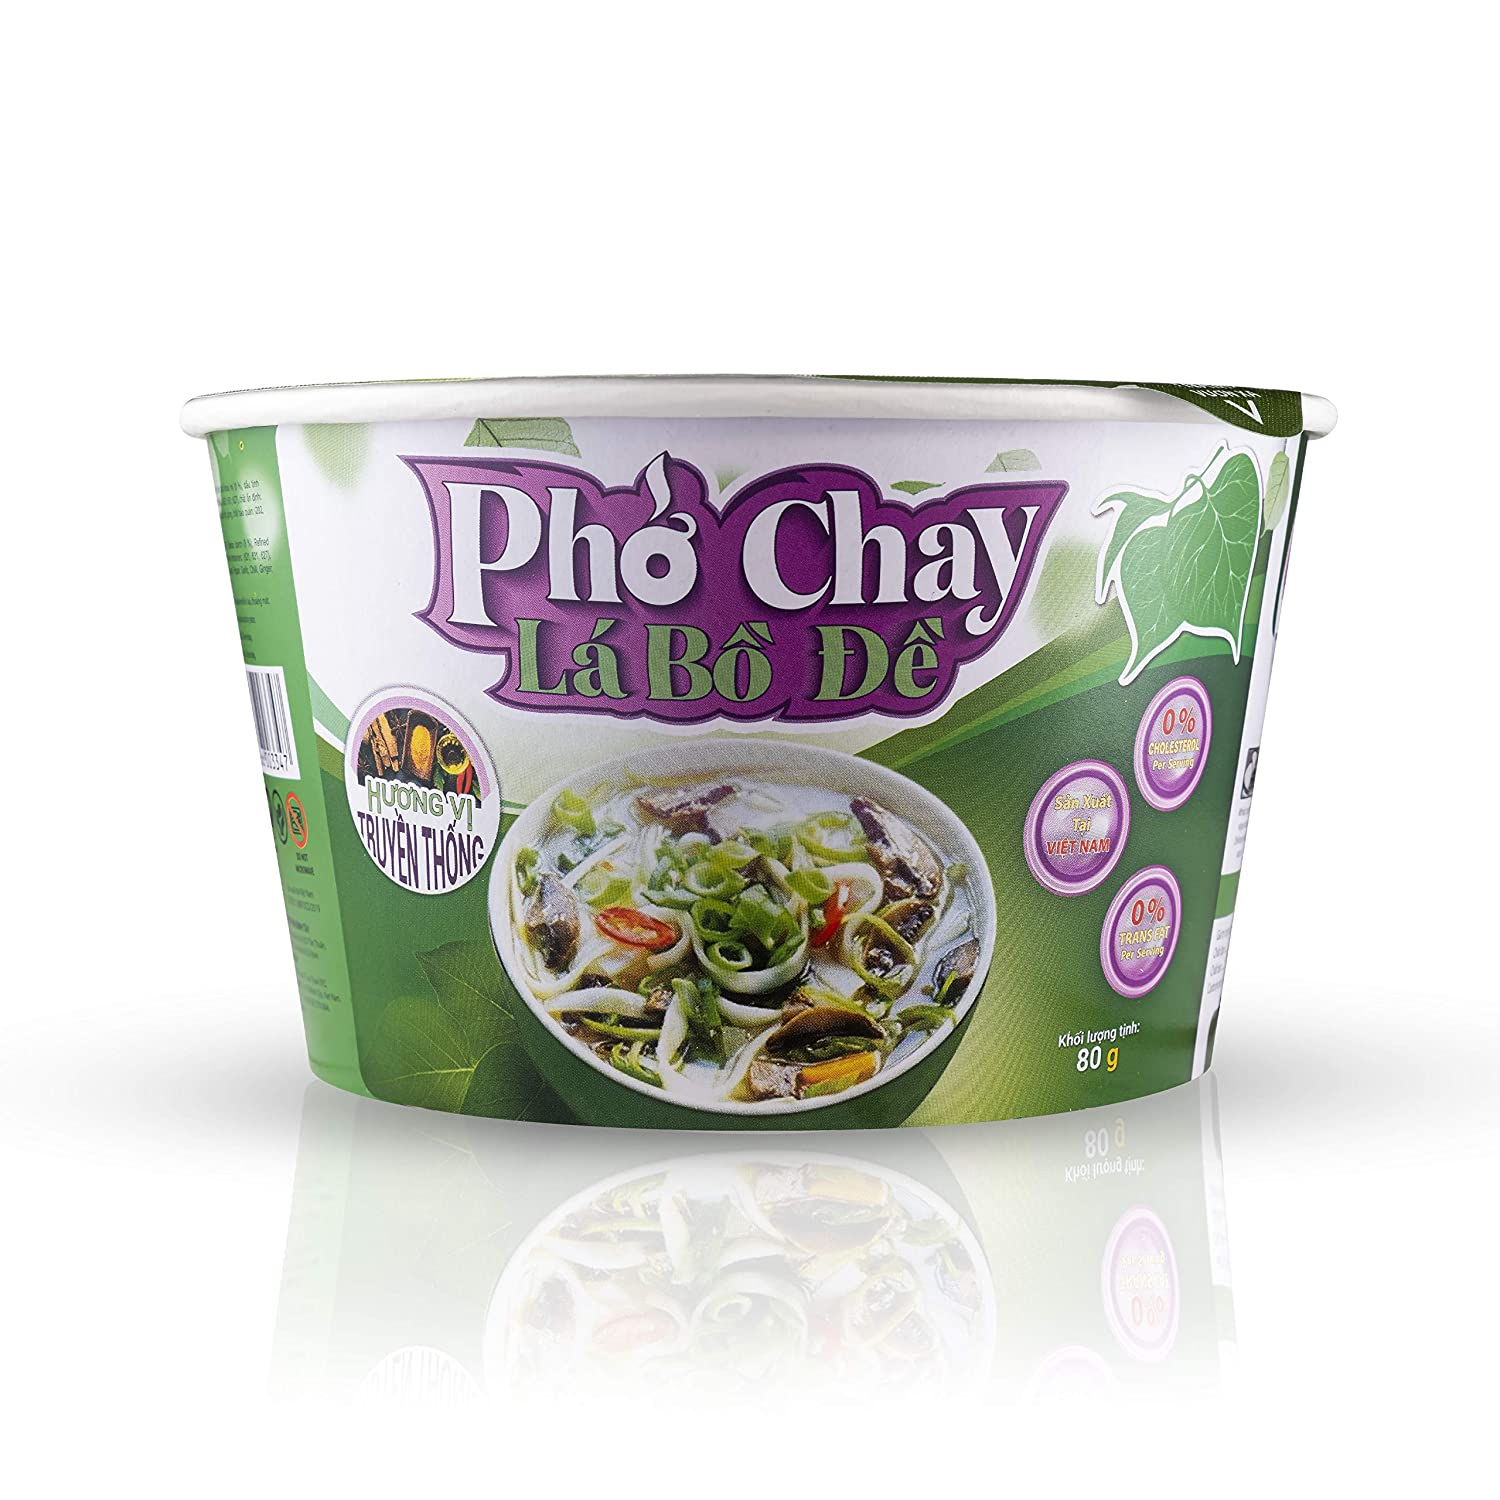 Instant Vegetarian Pho Noodles Bowl (6 pack) by SIMPLY FOOD ( Pho Chay)- 100% Natural, Gluten-Free, and Vegetarian - Made with Premium Rice Ingredients